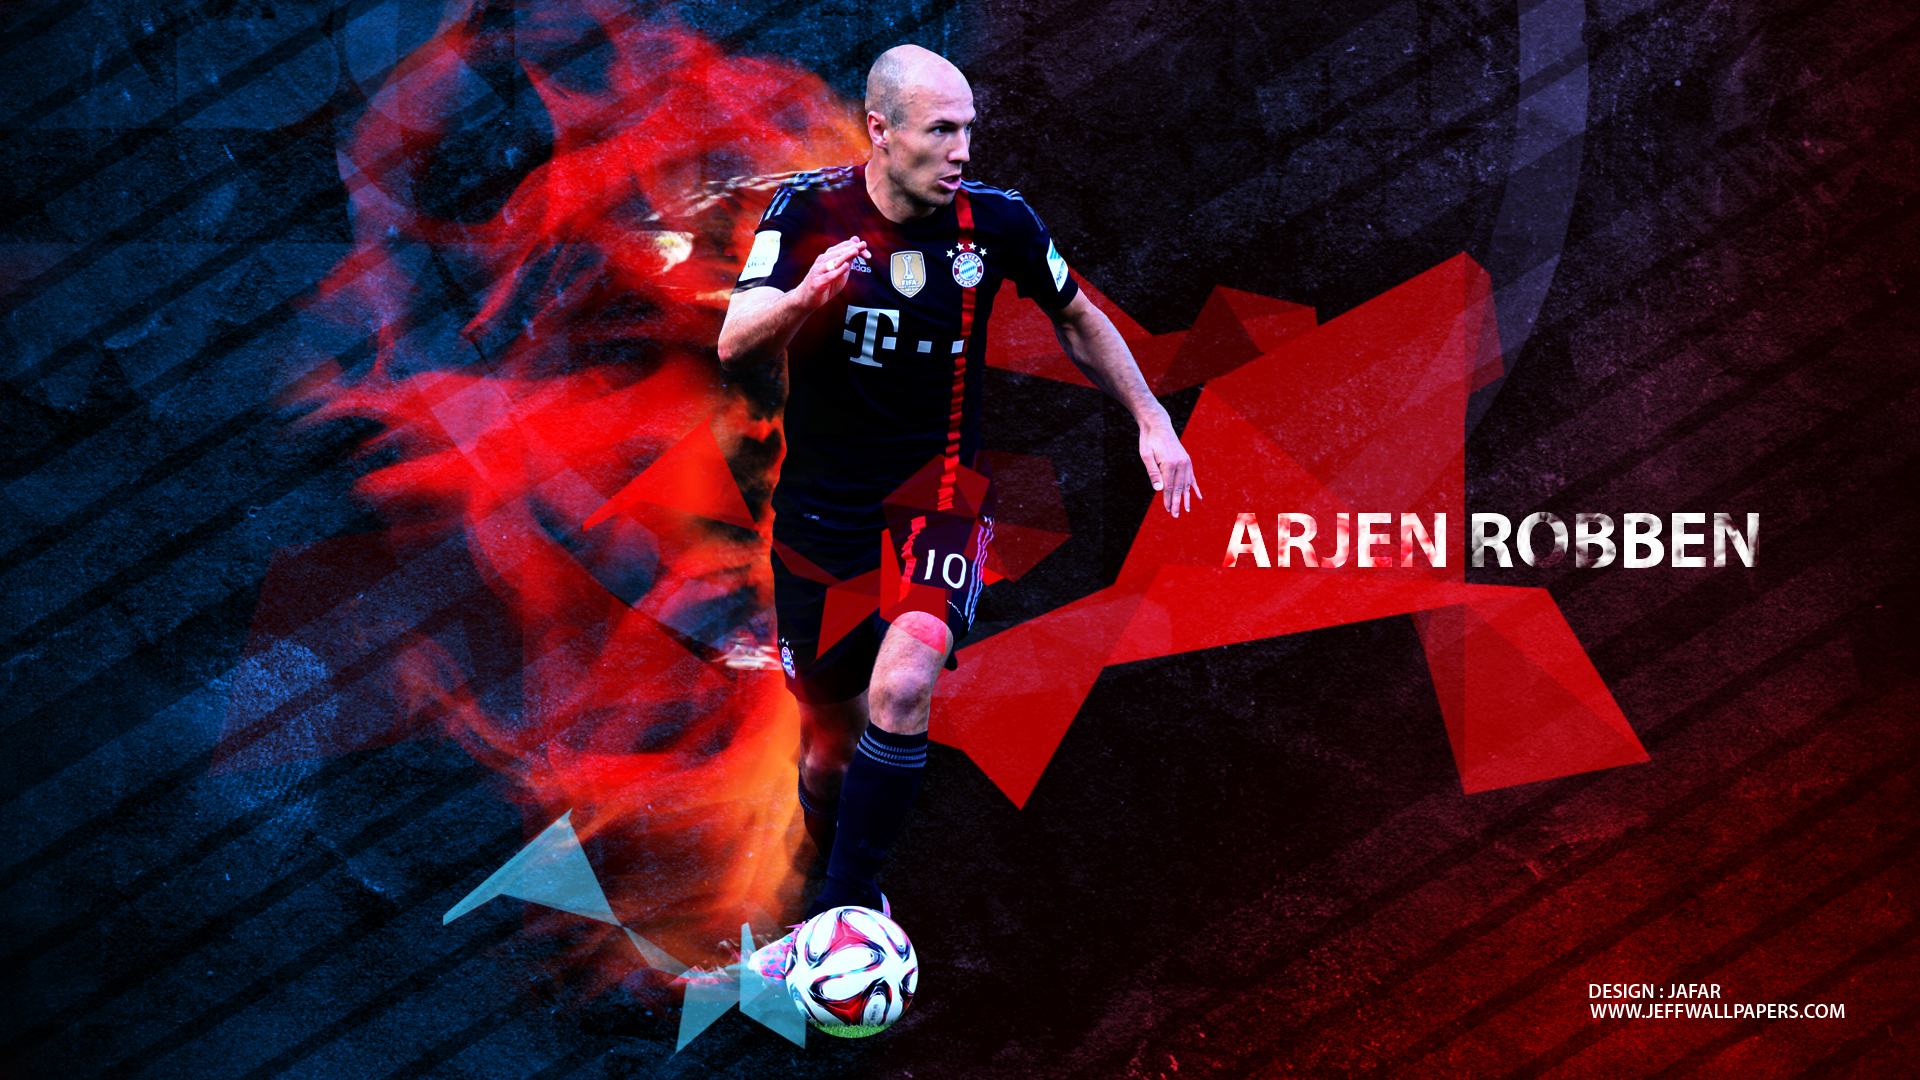 arjen robben wallpapers high resolution and quality download